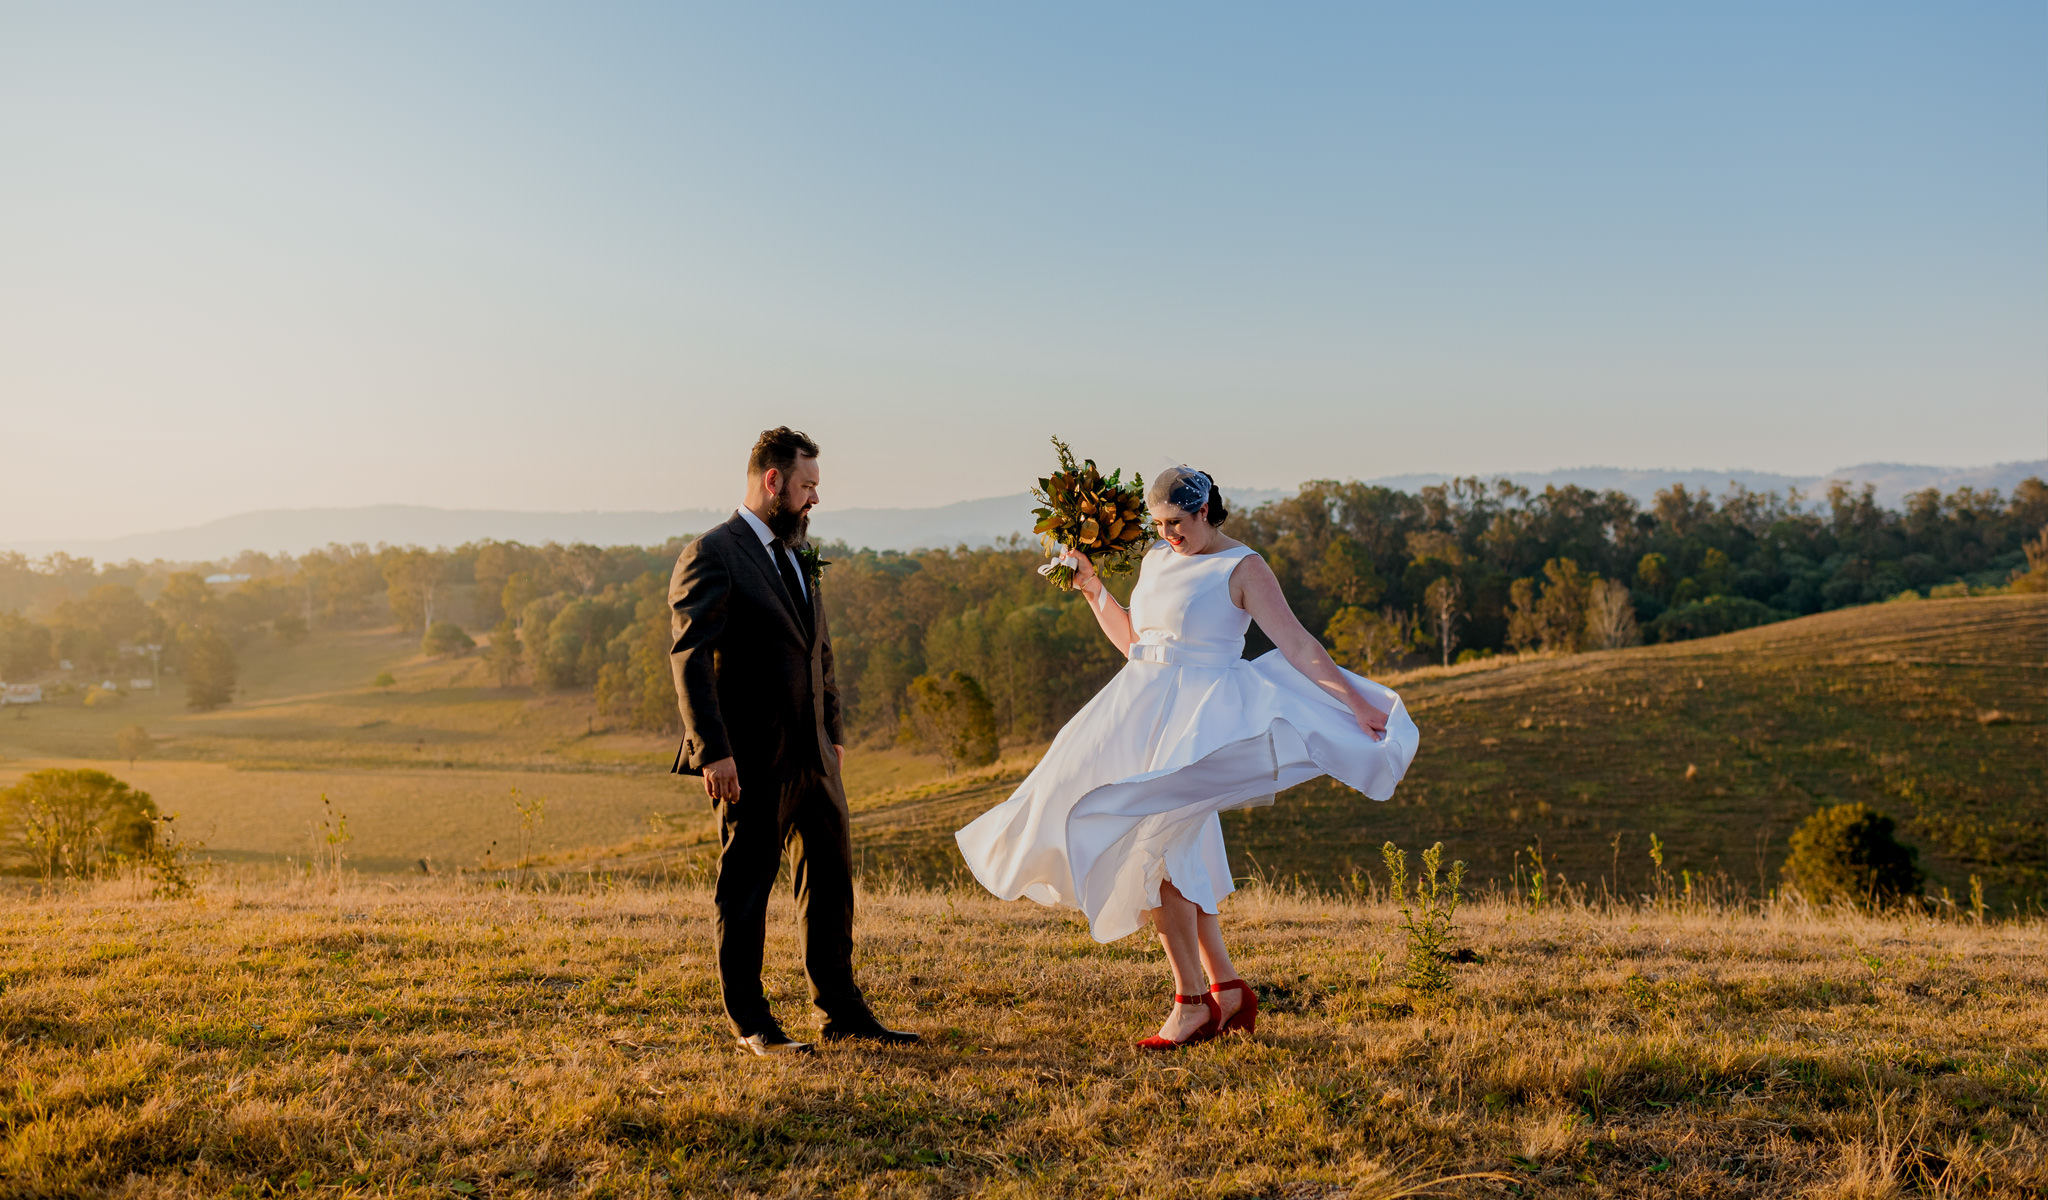 Bride spins in her wedding dress on a grassy hill next to groom